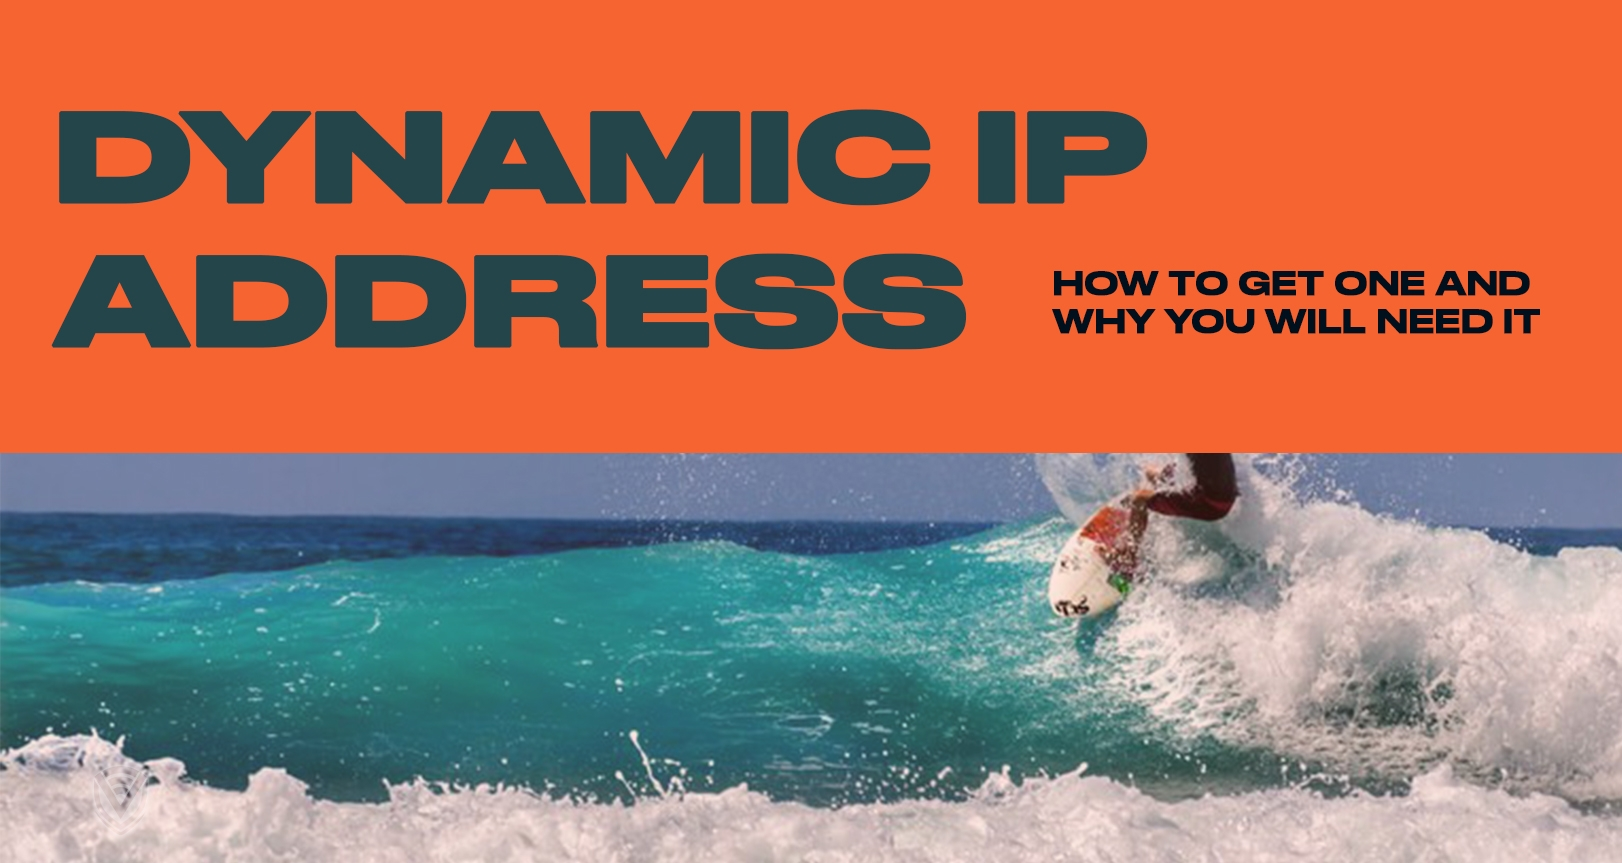 How to get a dynamic IP address, and why you might want one!